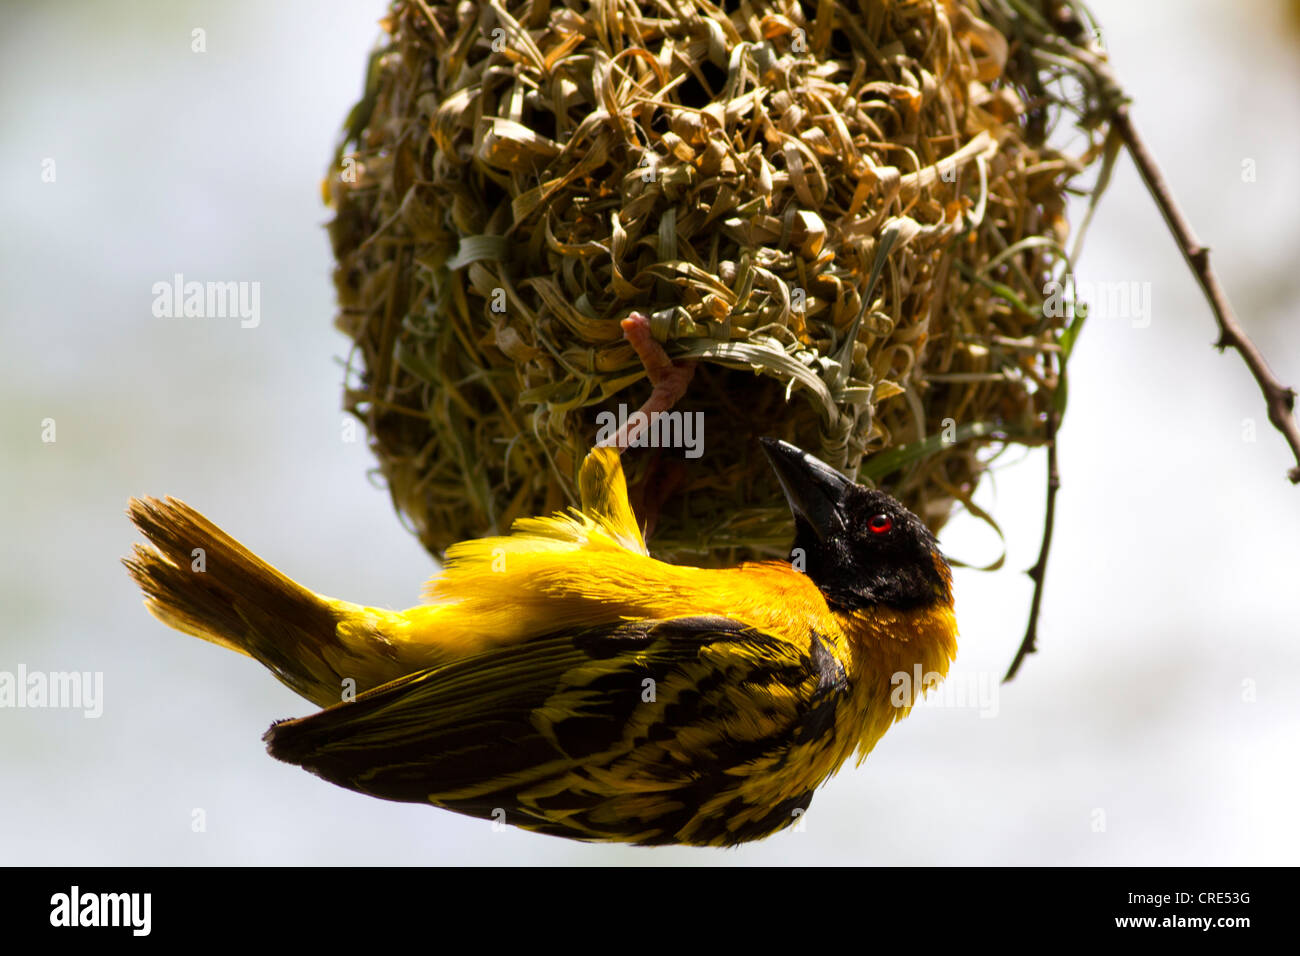 Black-headed Weaver (Ploceus melanocephalus), aka Yellow-Backed Weaver building a nest at Queen Elizabeth National - Stock Image